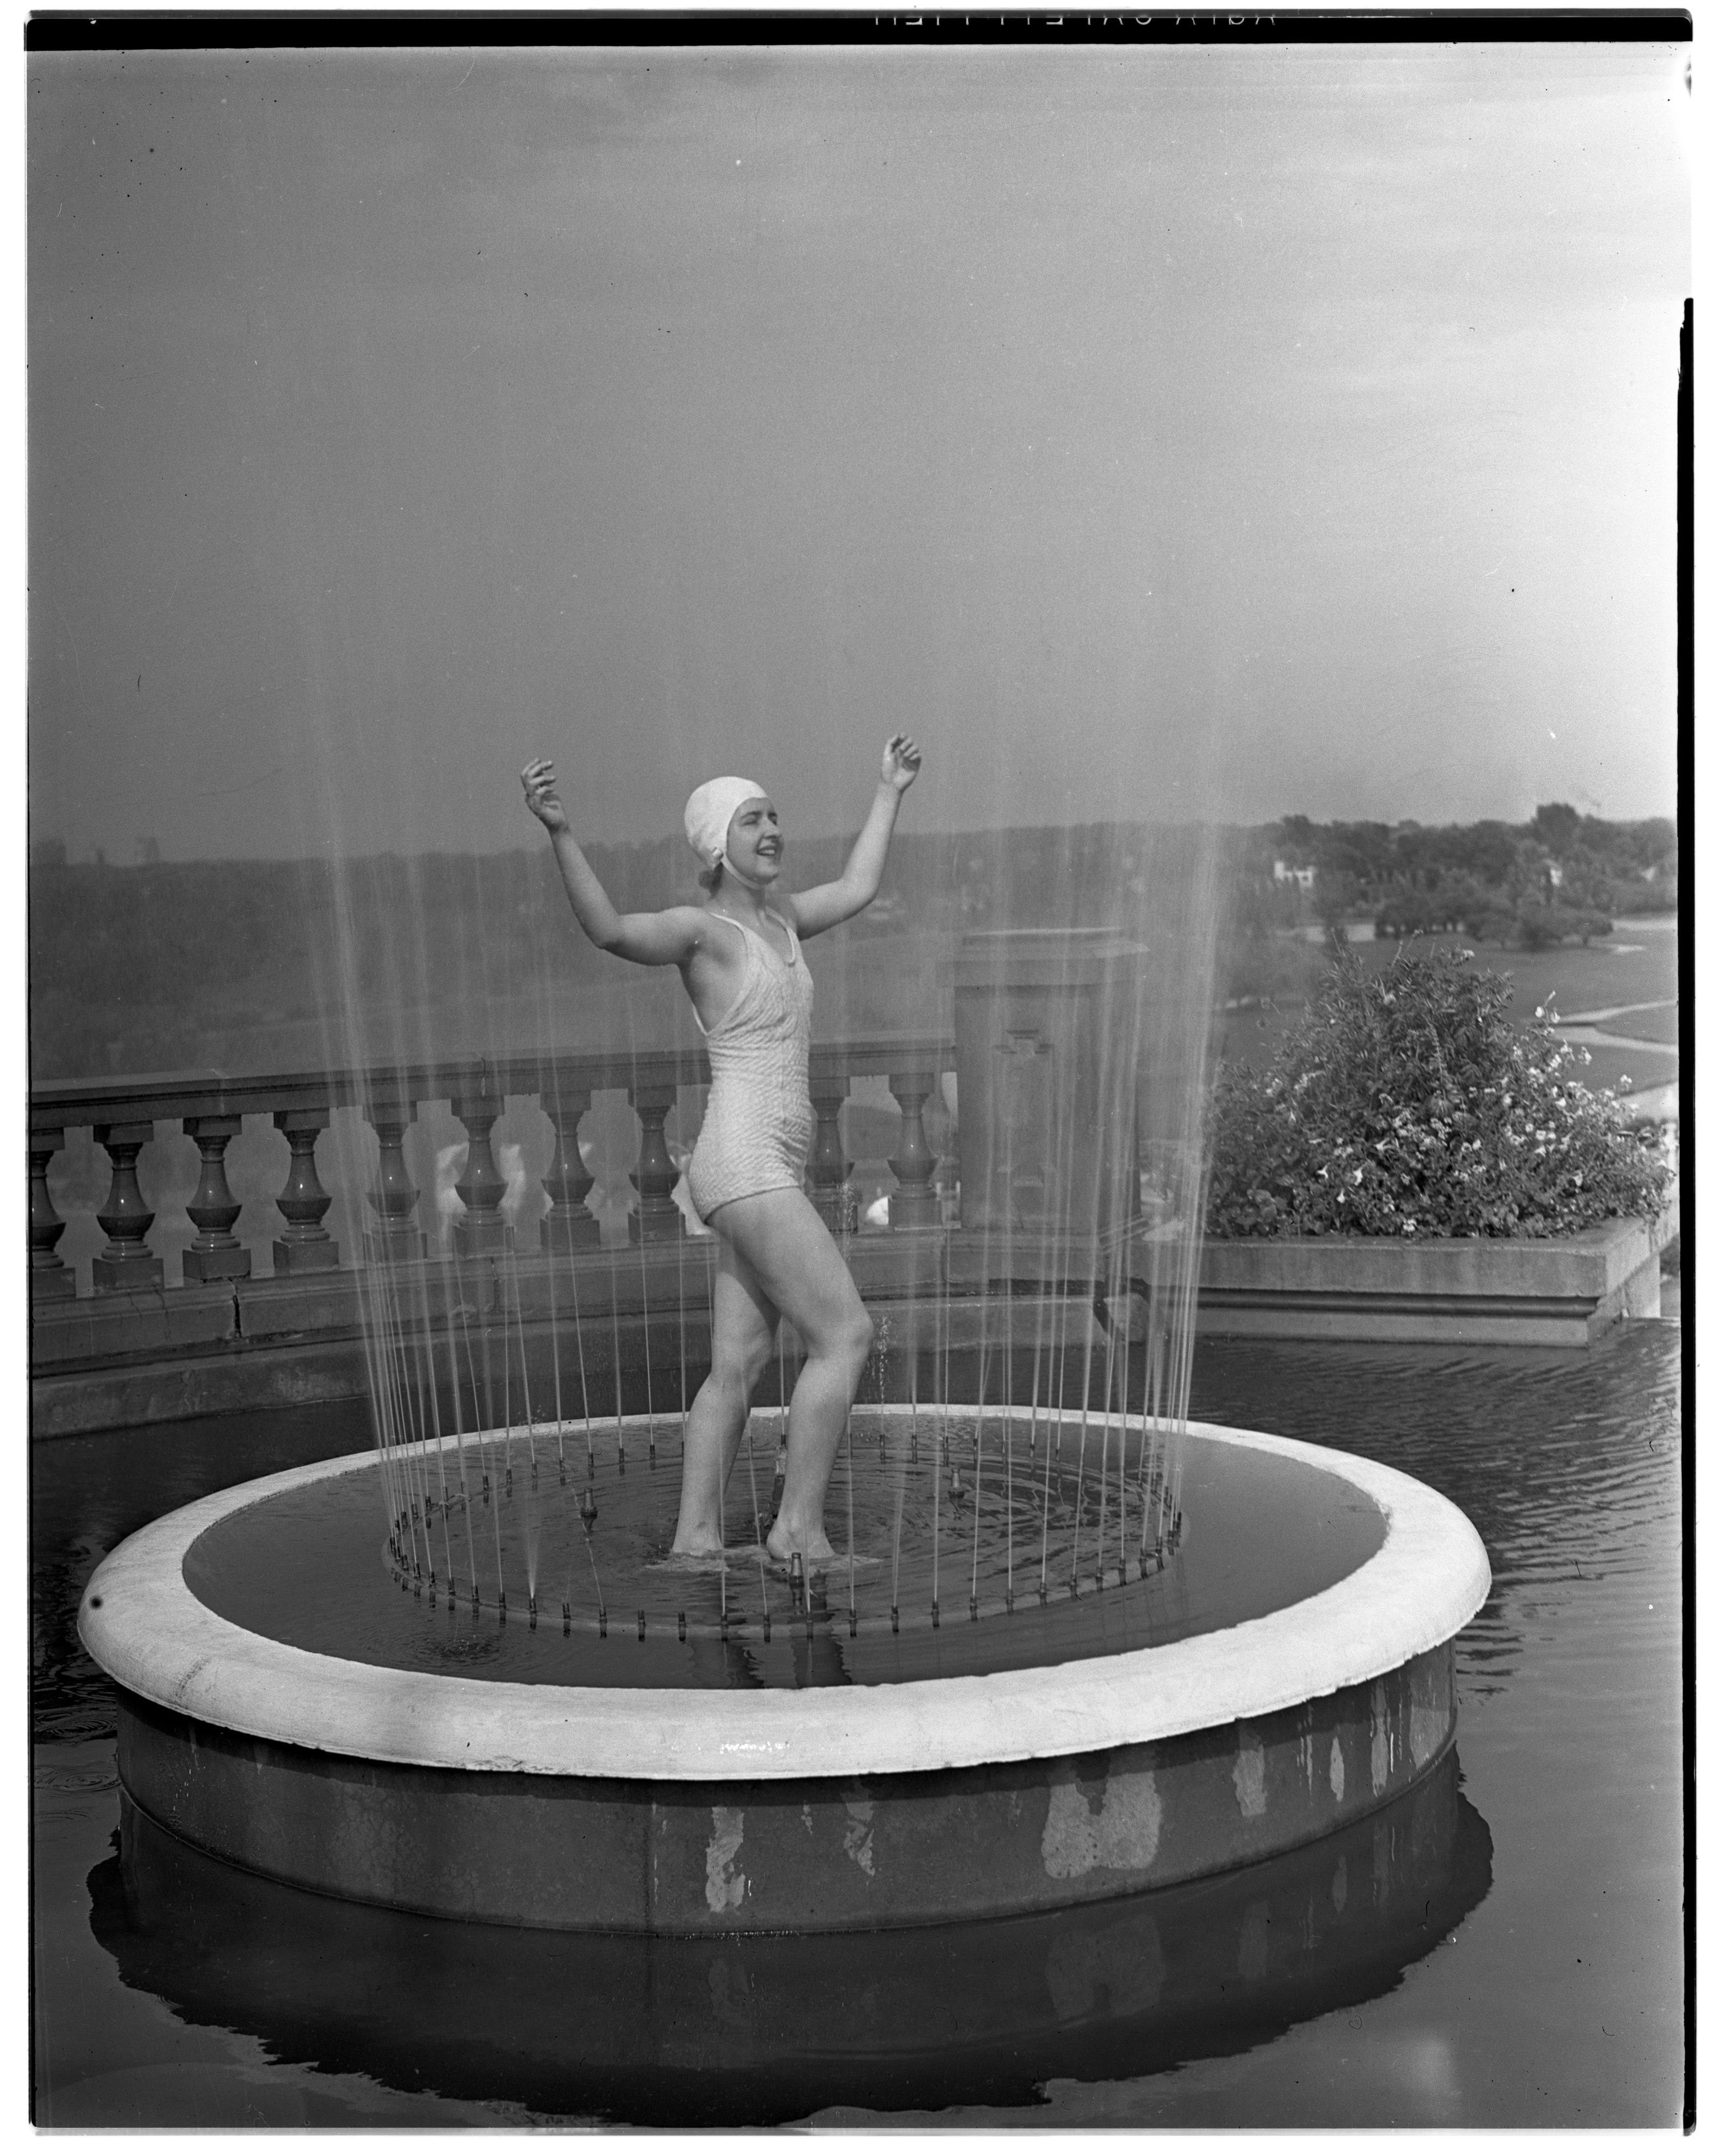 Jackson Cascades Carnival, a Girl in a Fountain Pool image